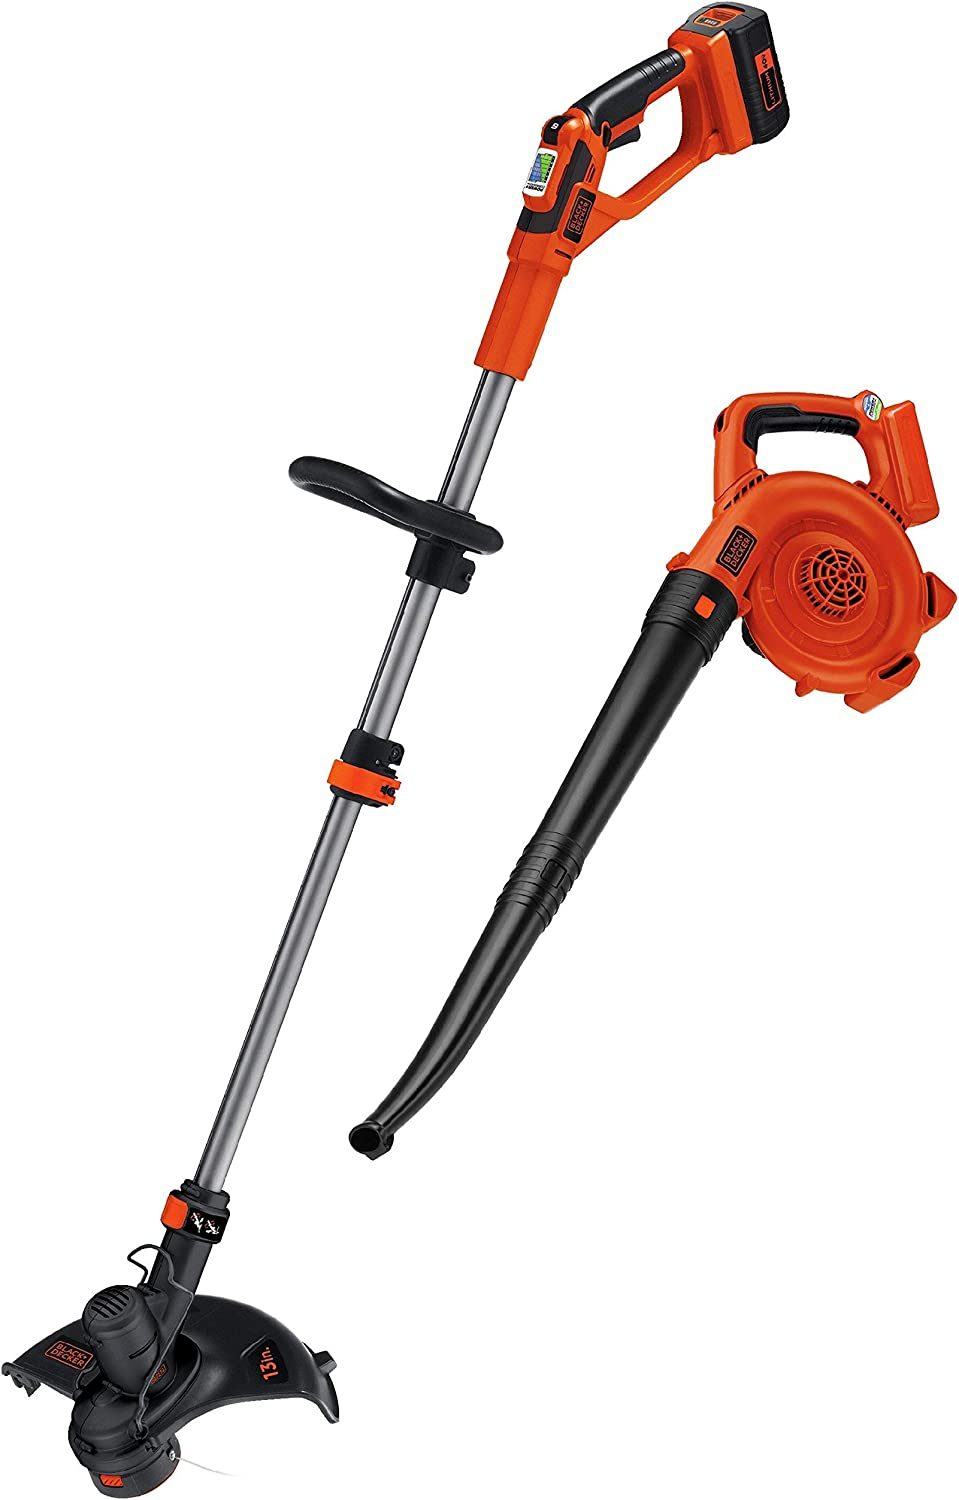 BLACK+DECKER LCC140 40-volt Max String Trimmer and Sweeper Lithium Ion Co (Renewed)